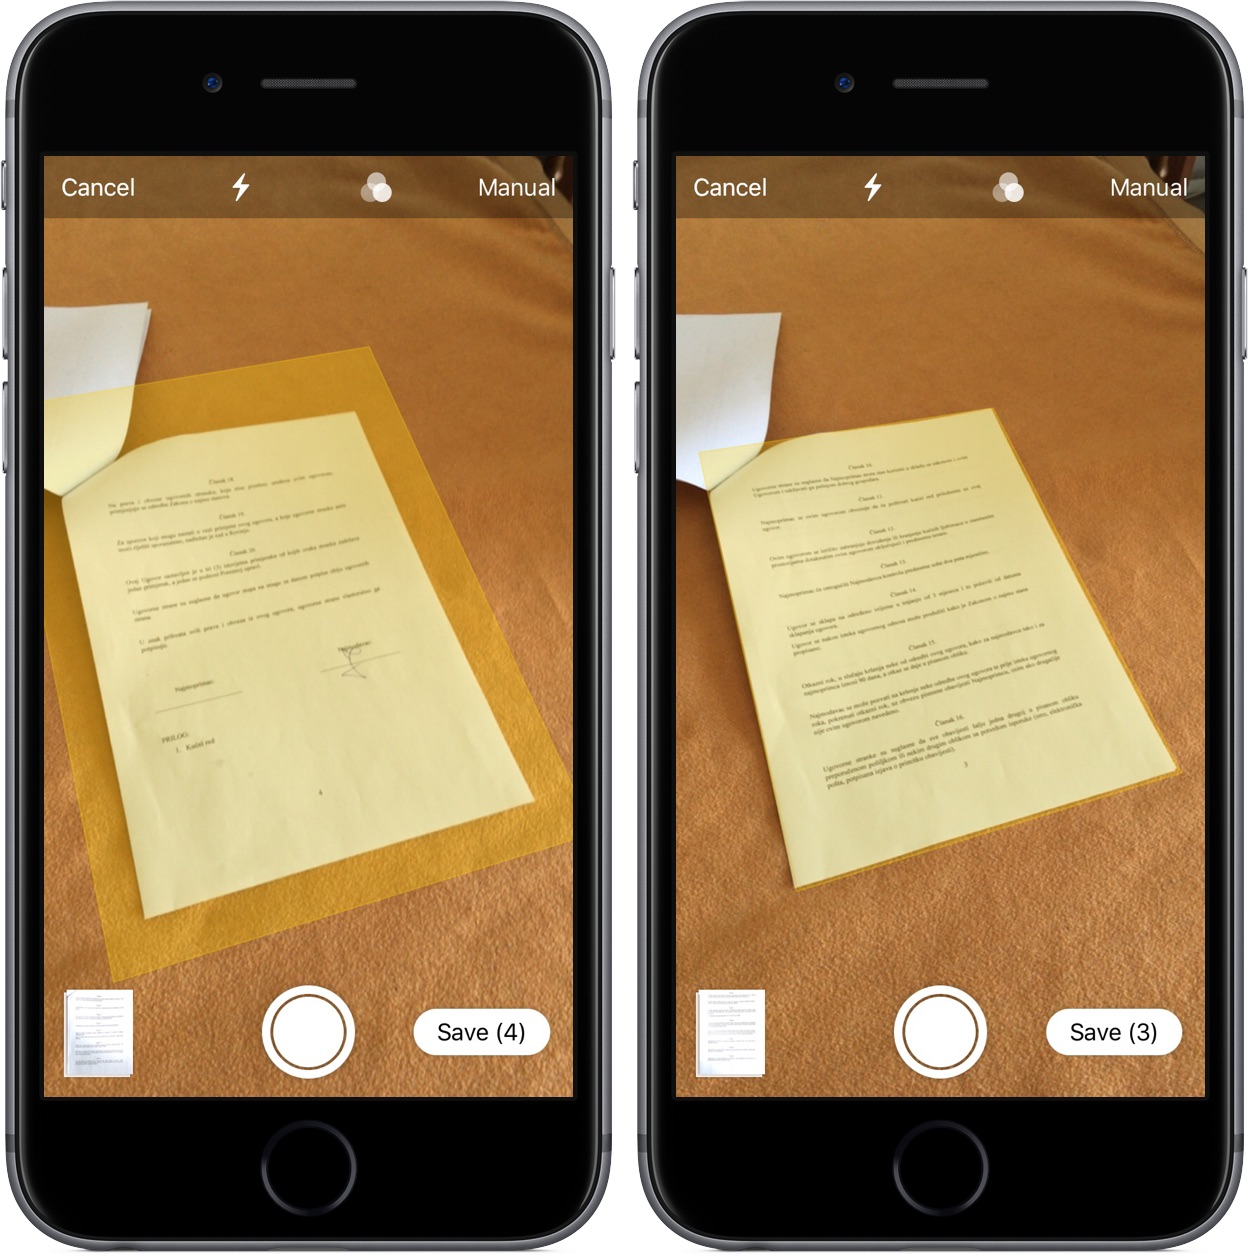 How to scan documents in the Notes app